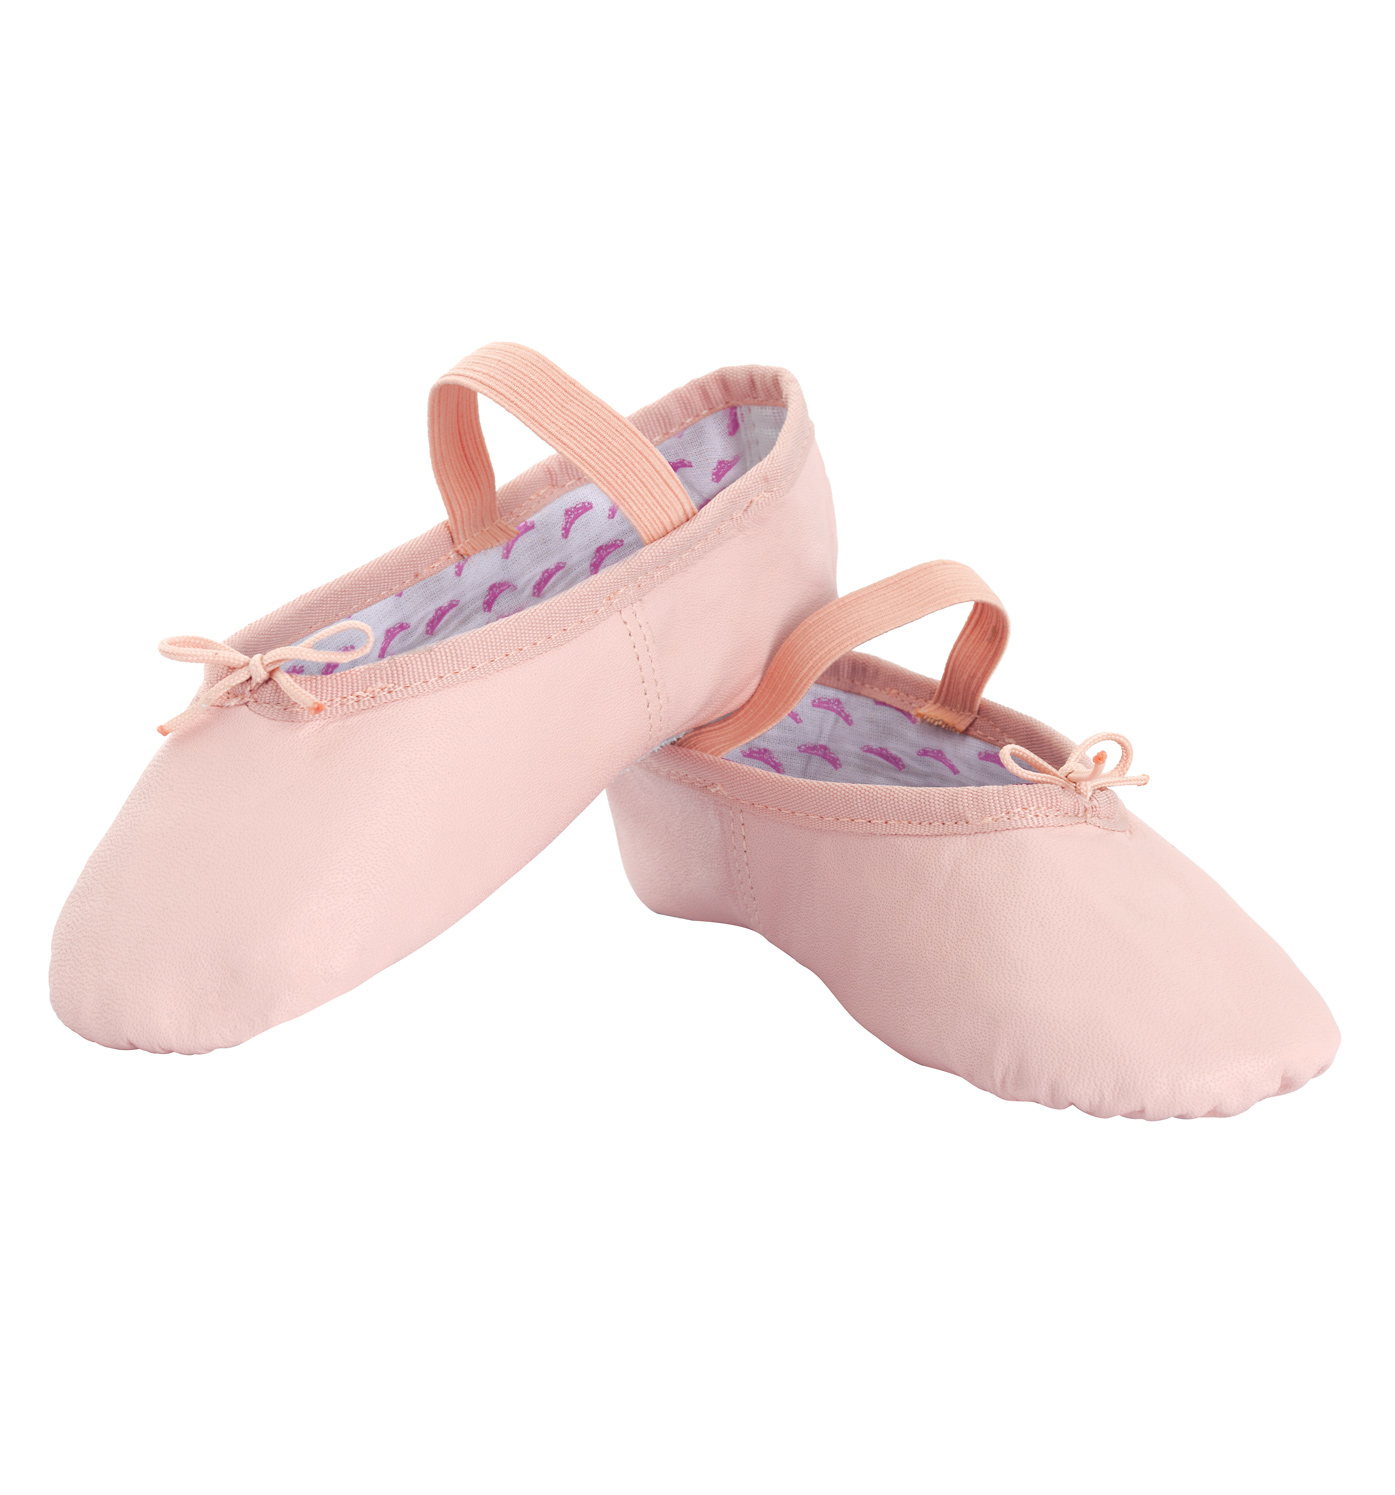 Theatricals Ballet Shoes Child and Adult